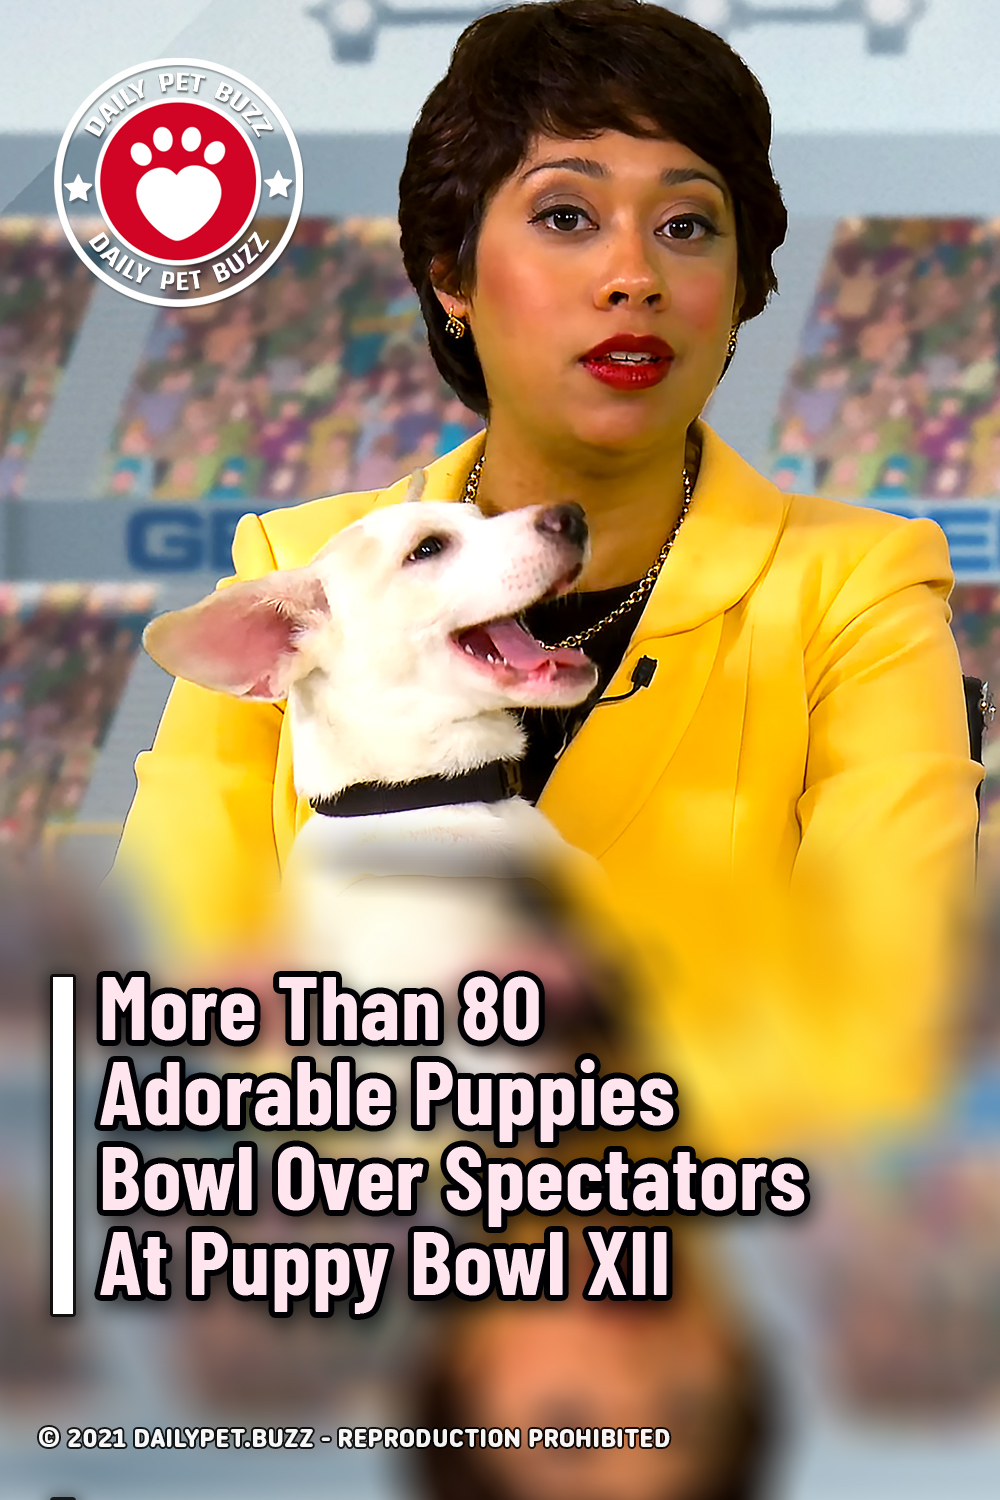 More Than 80 Adorable Puppies Bowl Over Spectators At Puppy Bowl XII